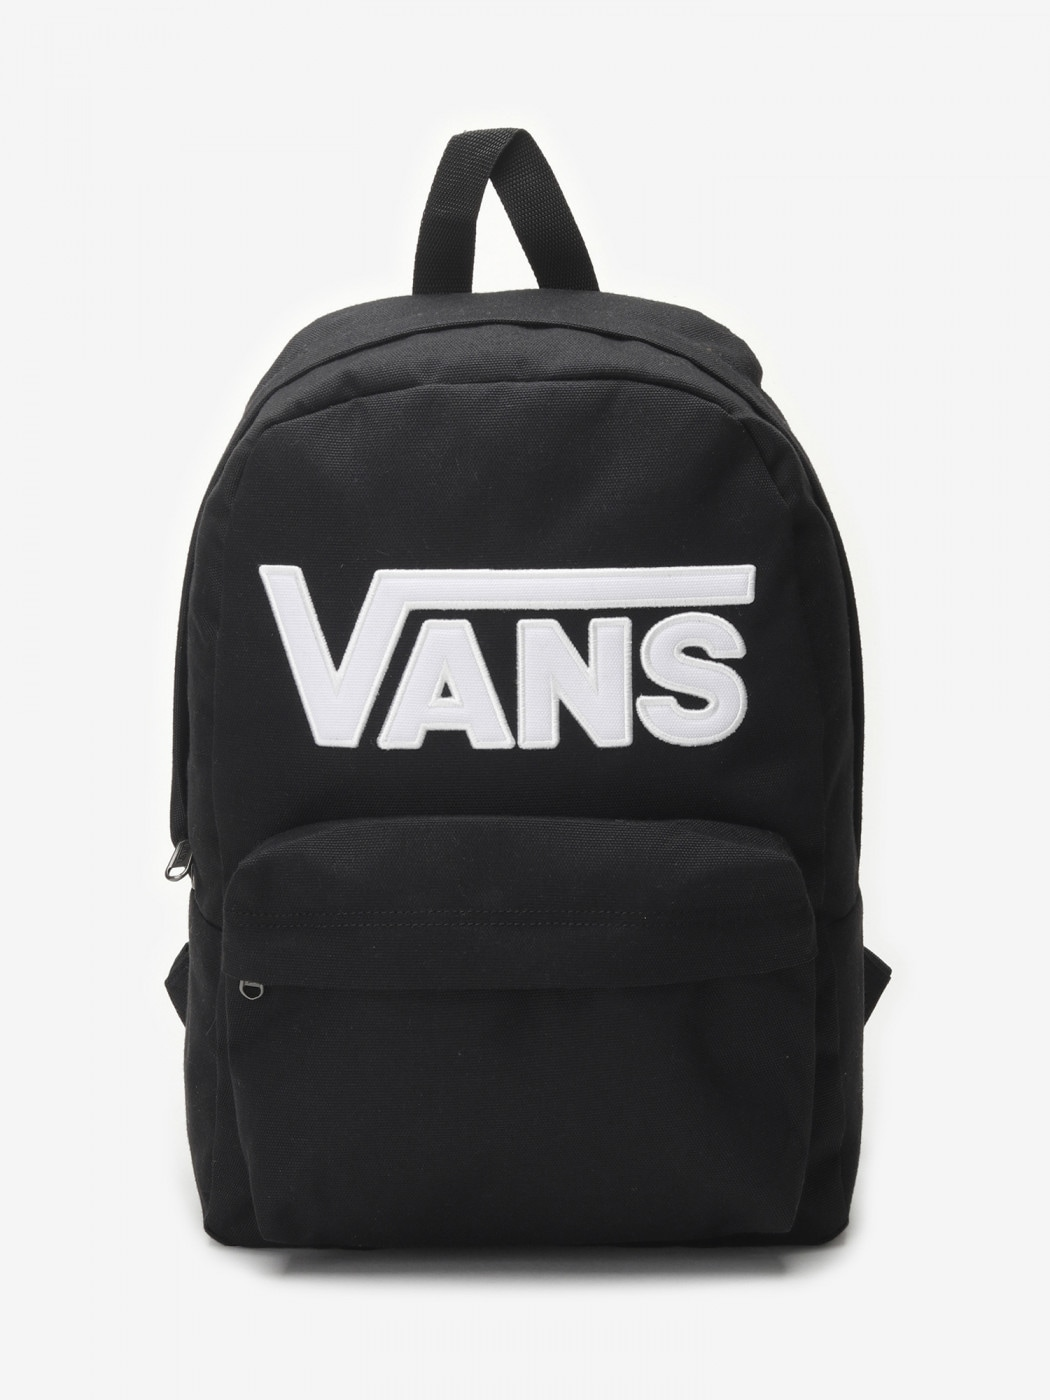 Vans By New Skool Backpac Black/White Backpack